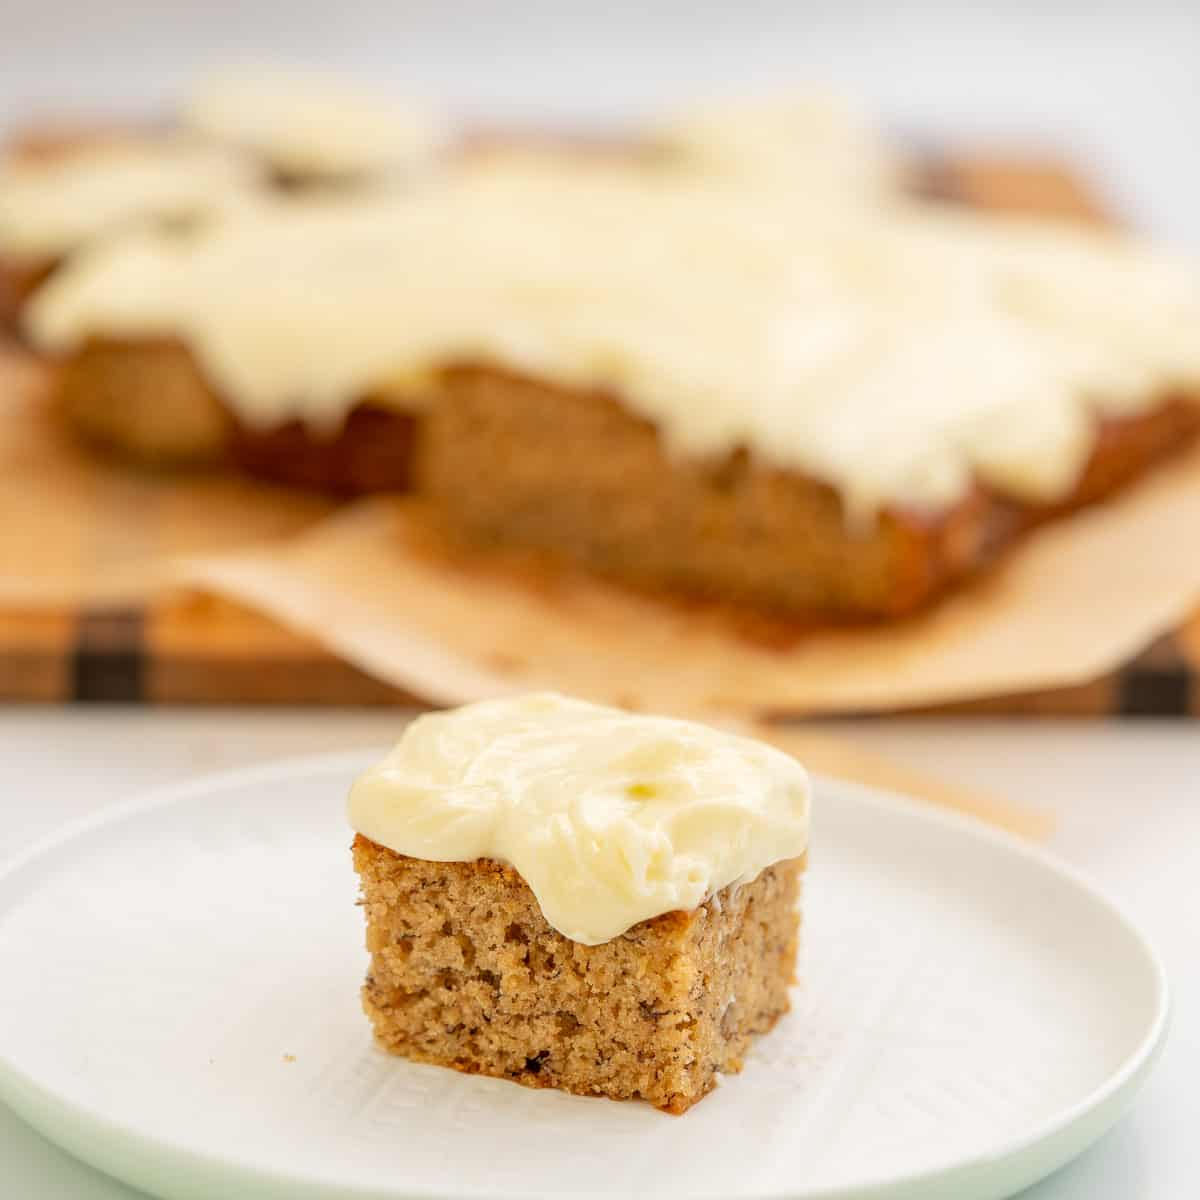 A square piece of banana cake frosted with cream cheese icing sitting on a white plate.